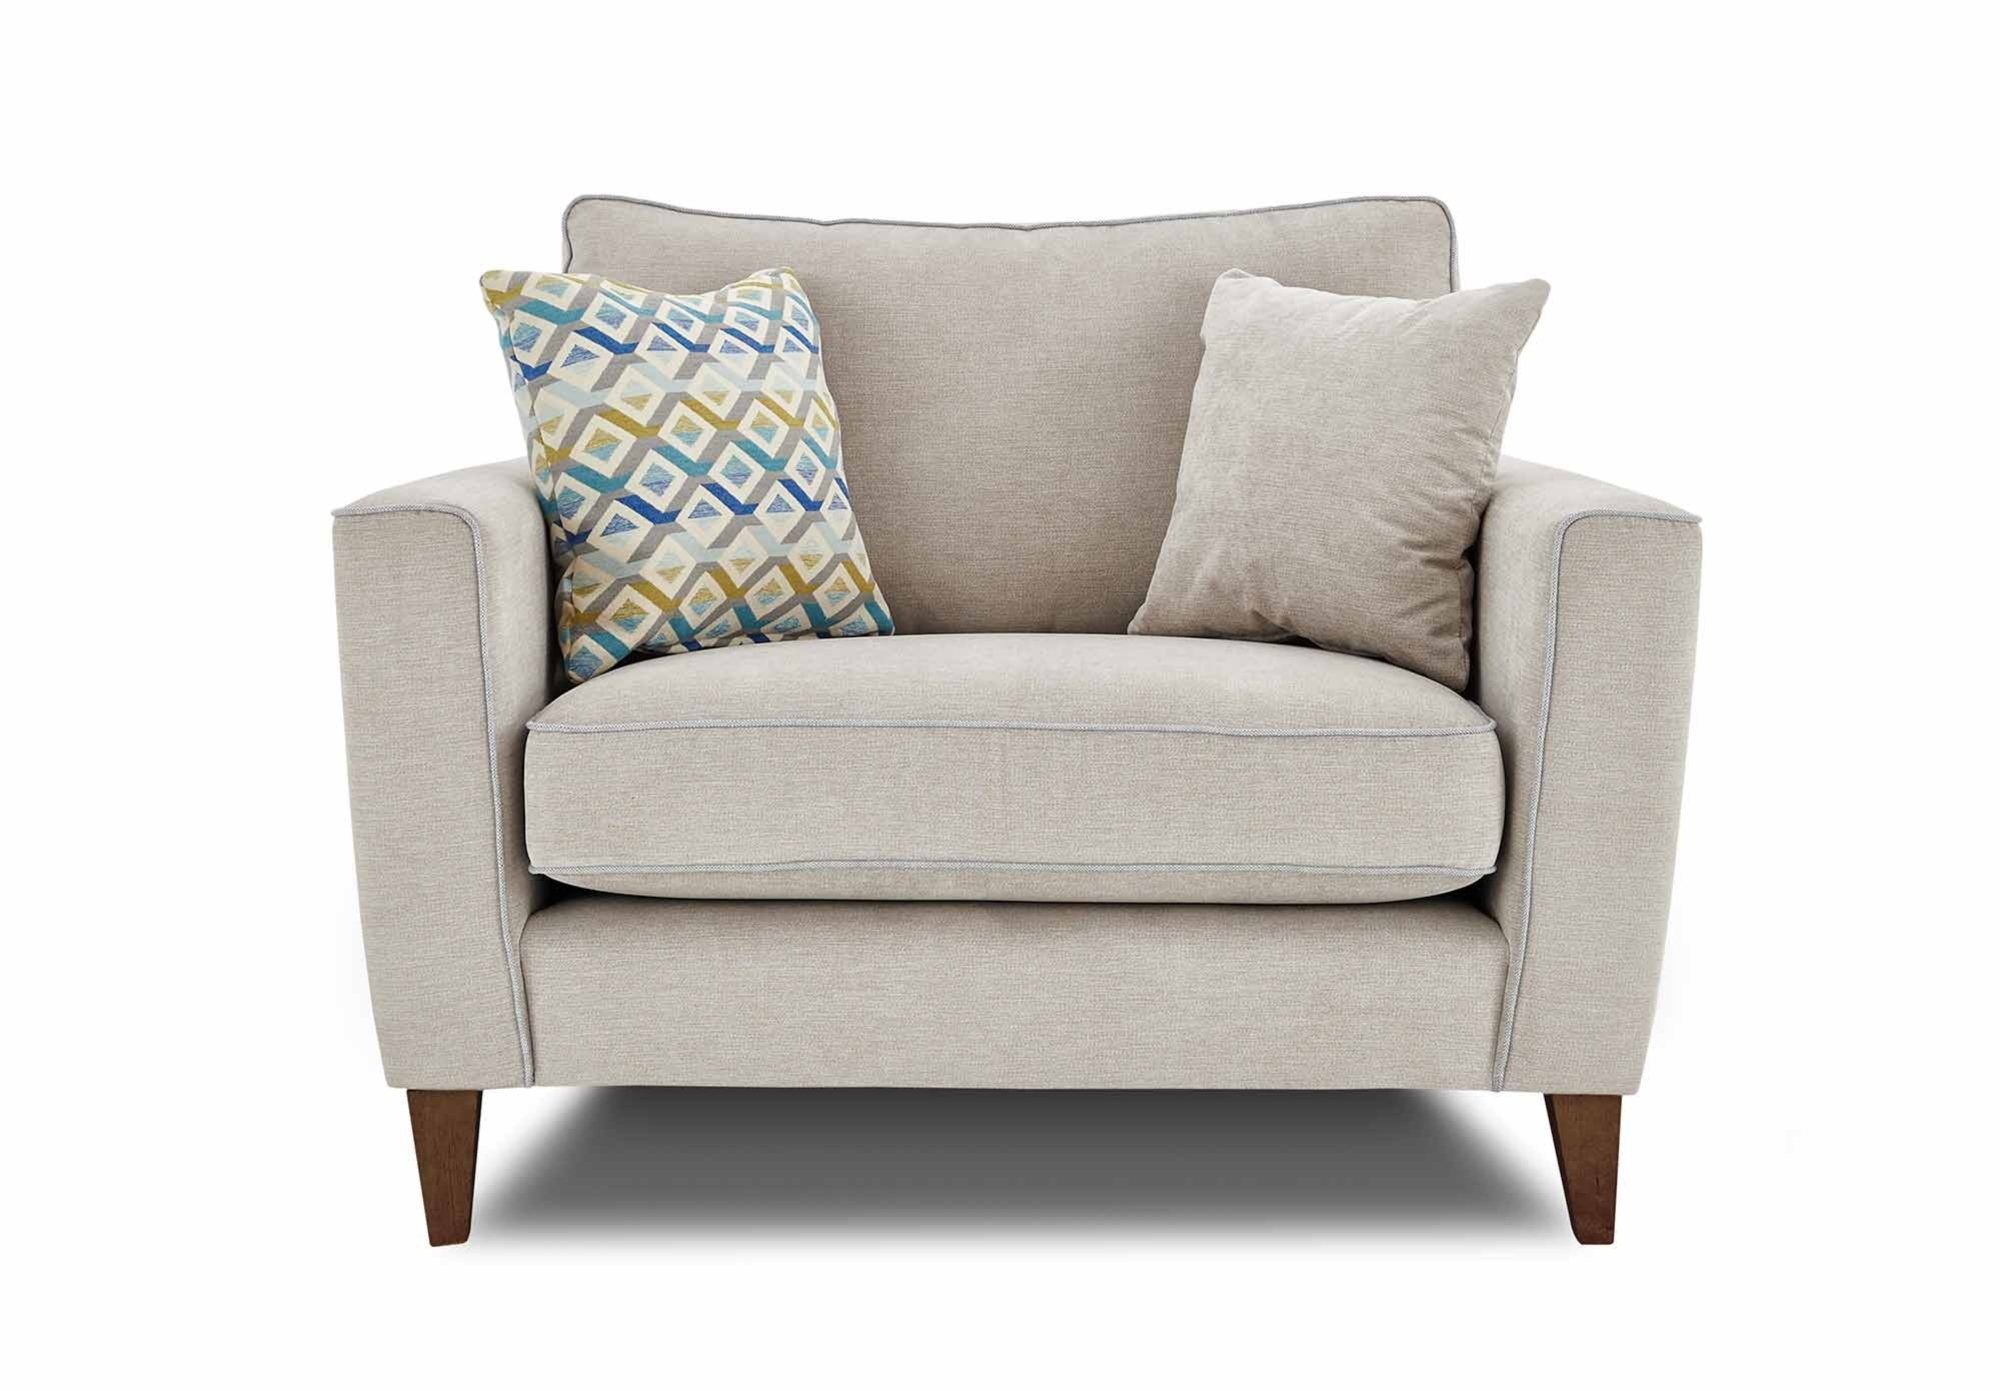 Snuggle Chairs 15 Inspirations Snuggle Sofas Sofa Ideas